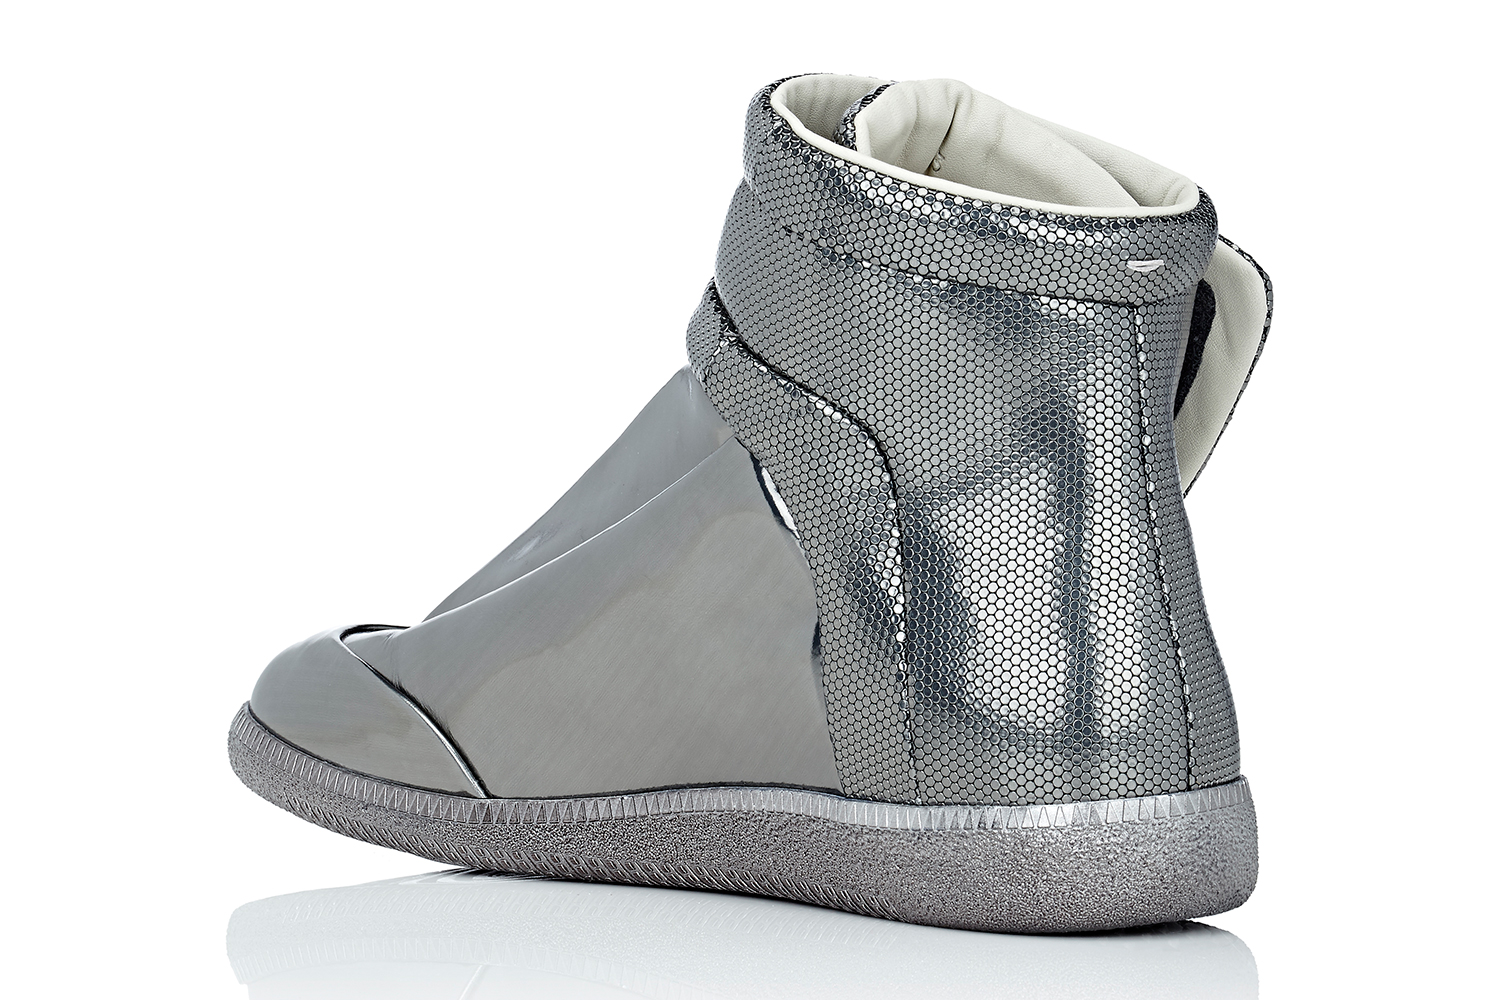 maison-margiela-barneys-metallic-future-high-top-sneakers-03